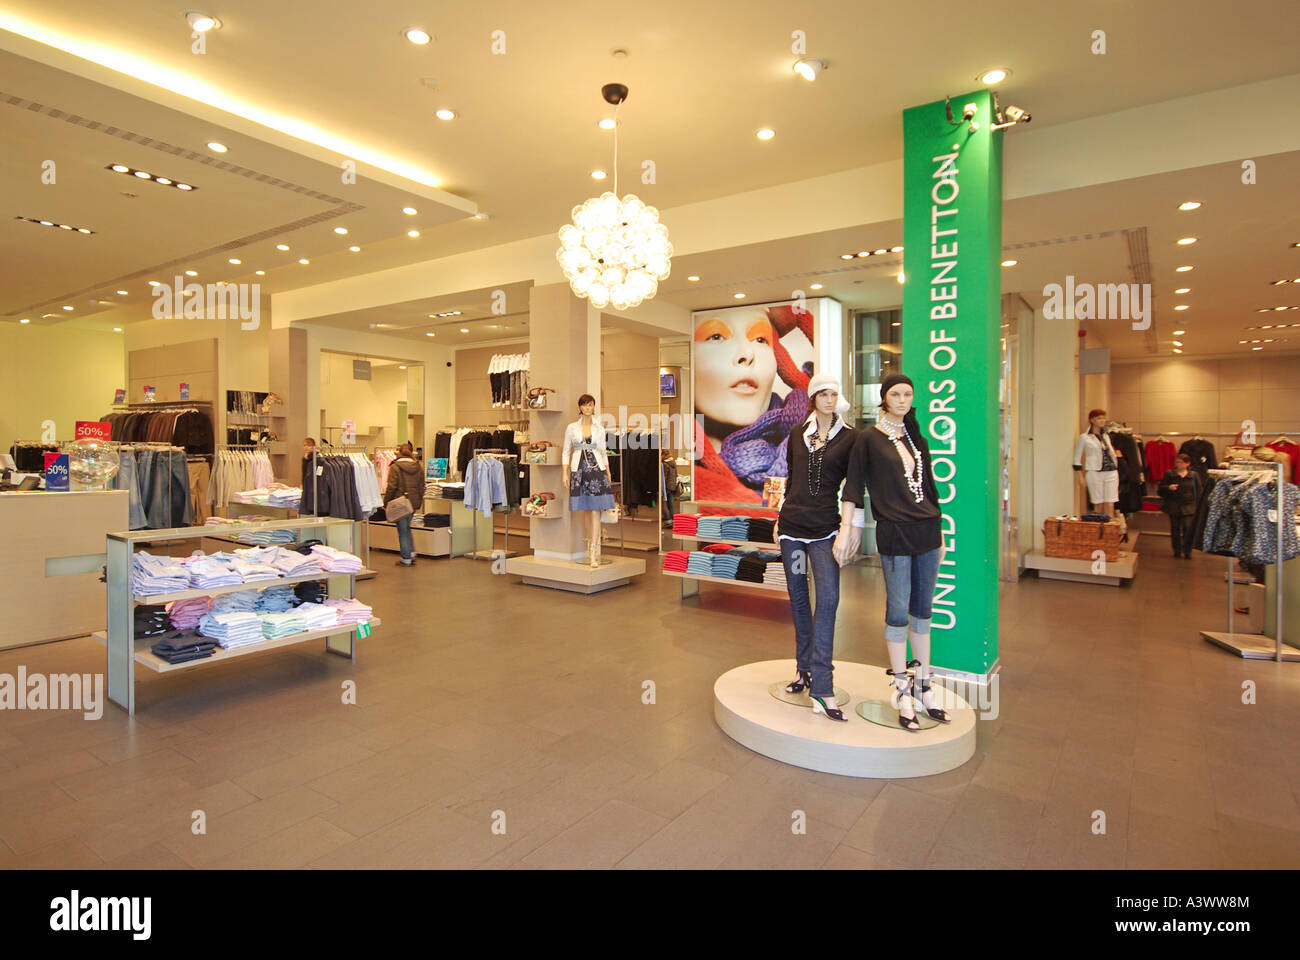 Open Store Doors open plan entrance without doors to benetton clothing store seen